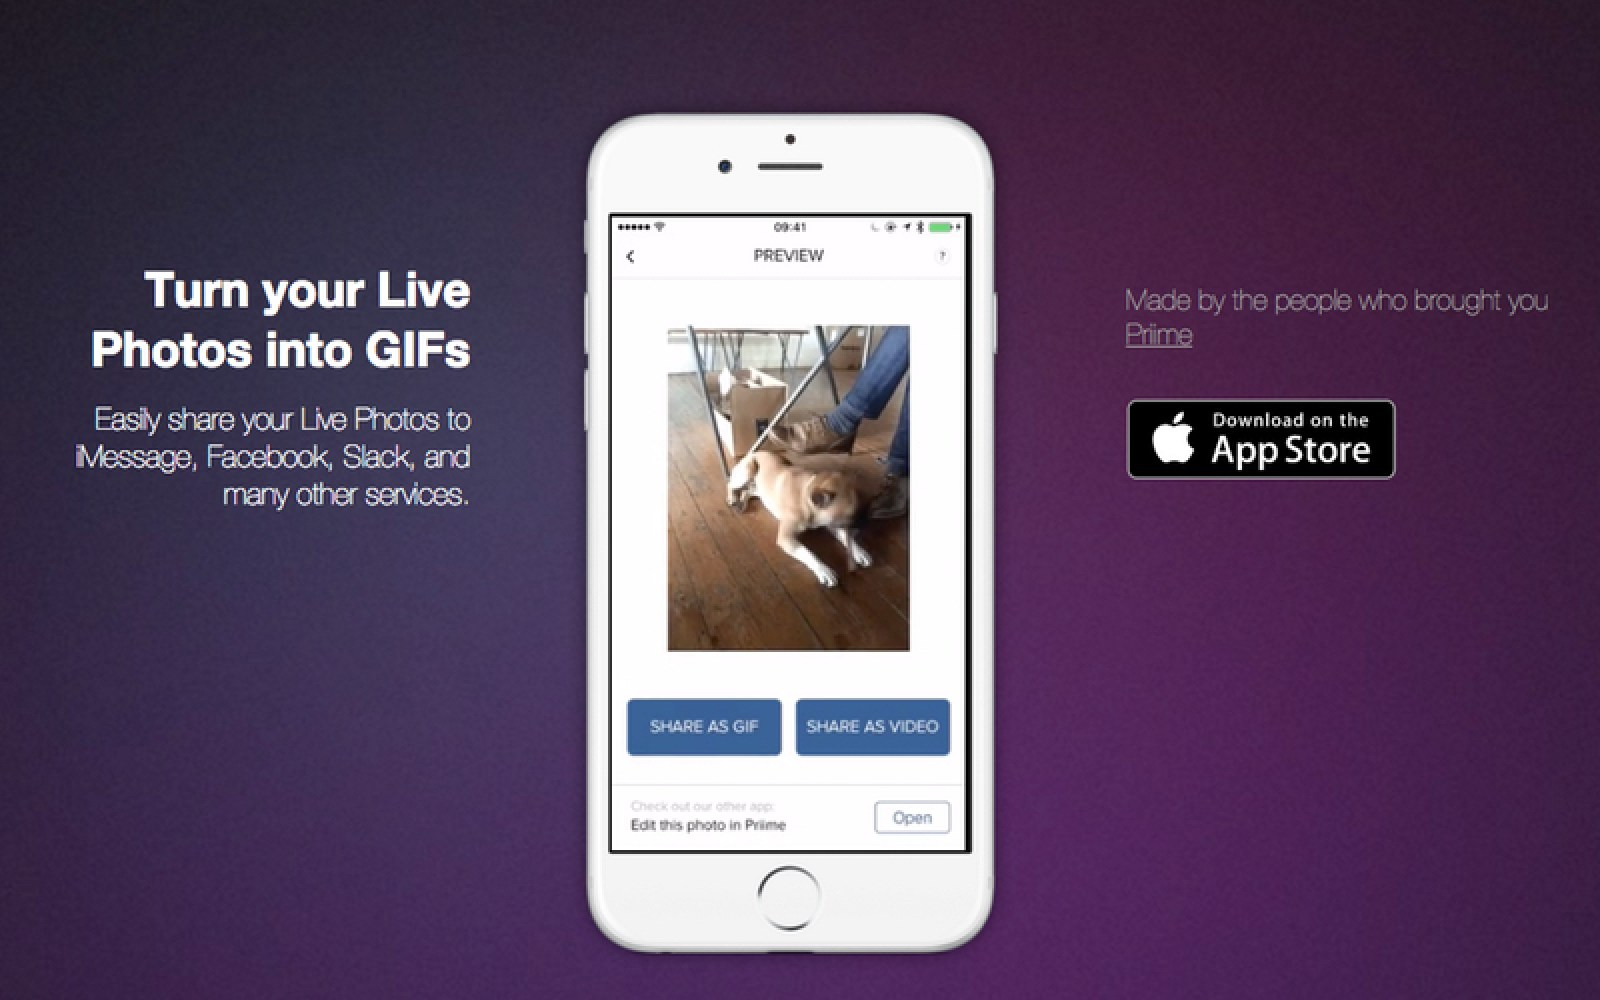 Turn your Live Photos into GIFs with new Live GIF app